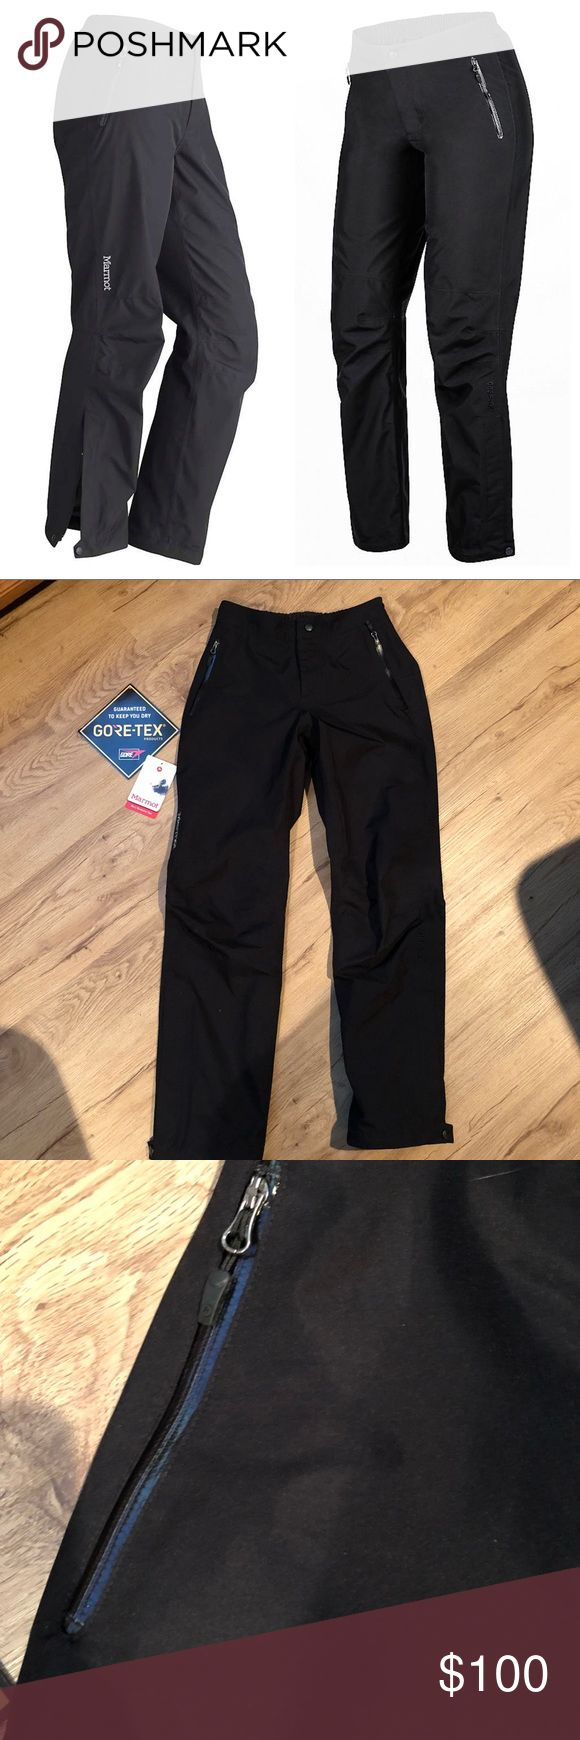 Marmot Minimalist Gore-Tex Pants Purchased and worn one time. A bit too small for me, so sadly I'm selling them. They are amazing pants that will keep you extremely dry. Size XS. Marmot Pants